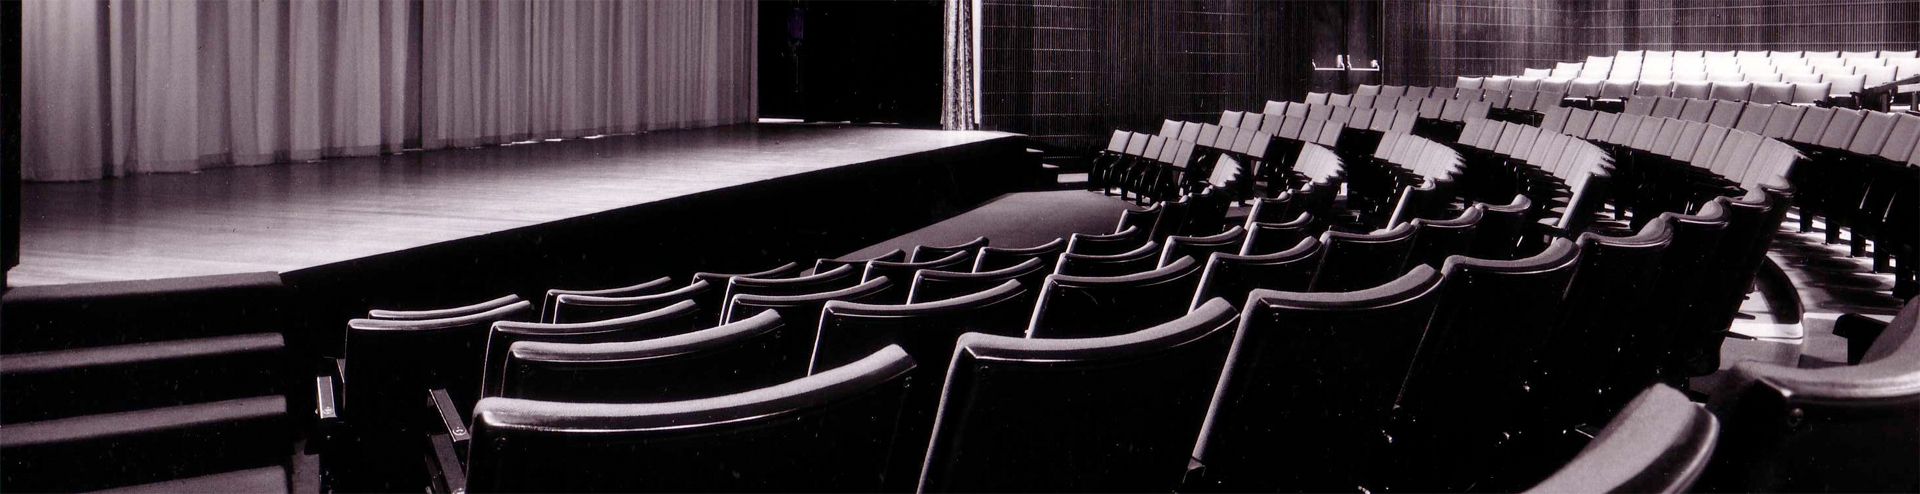 Theatre seating overlooking the stage